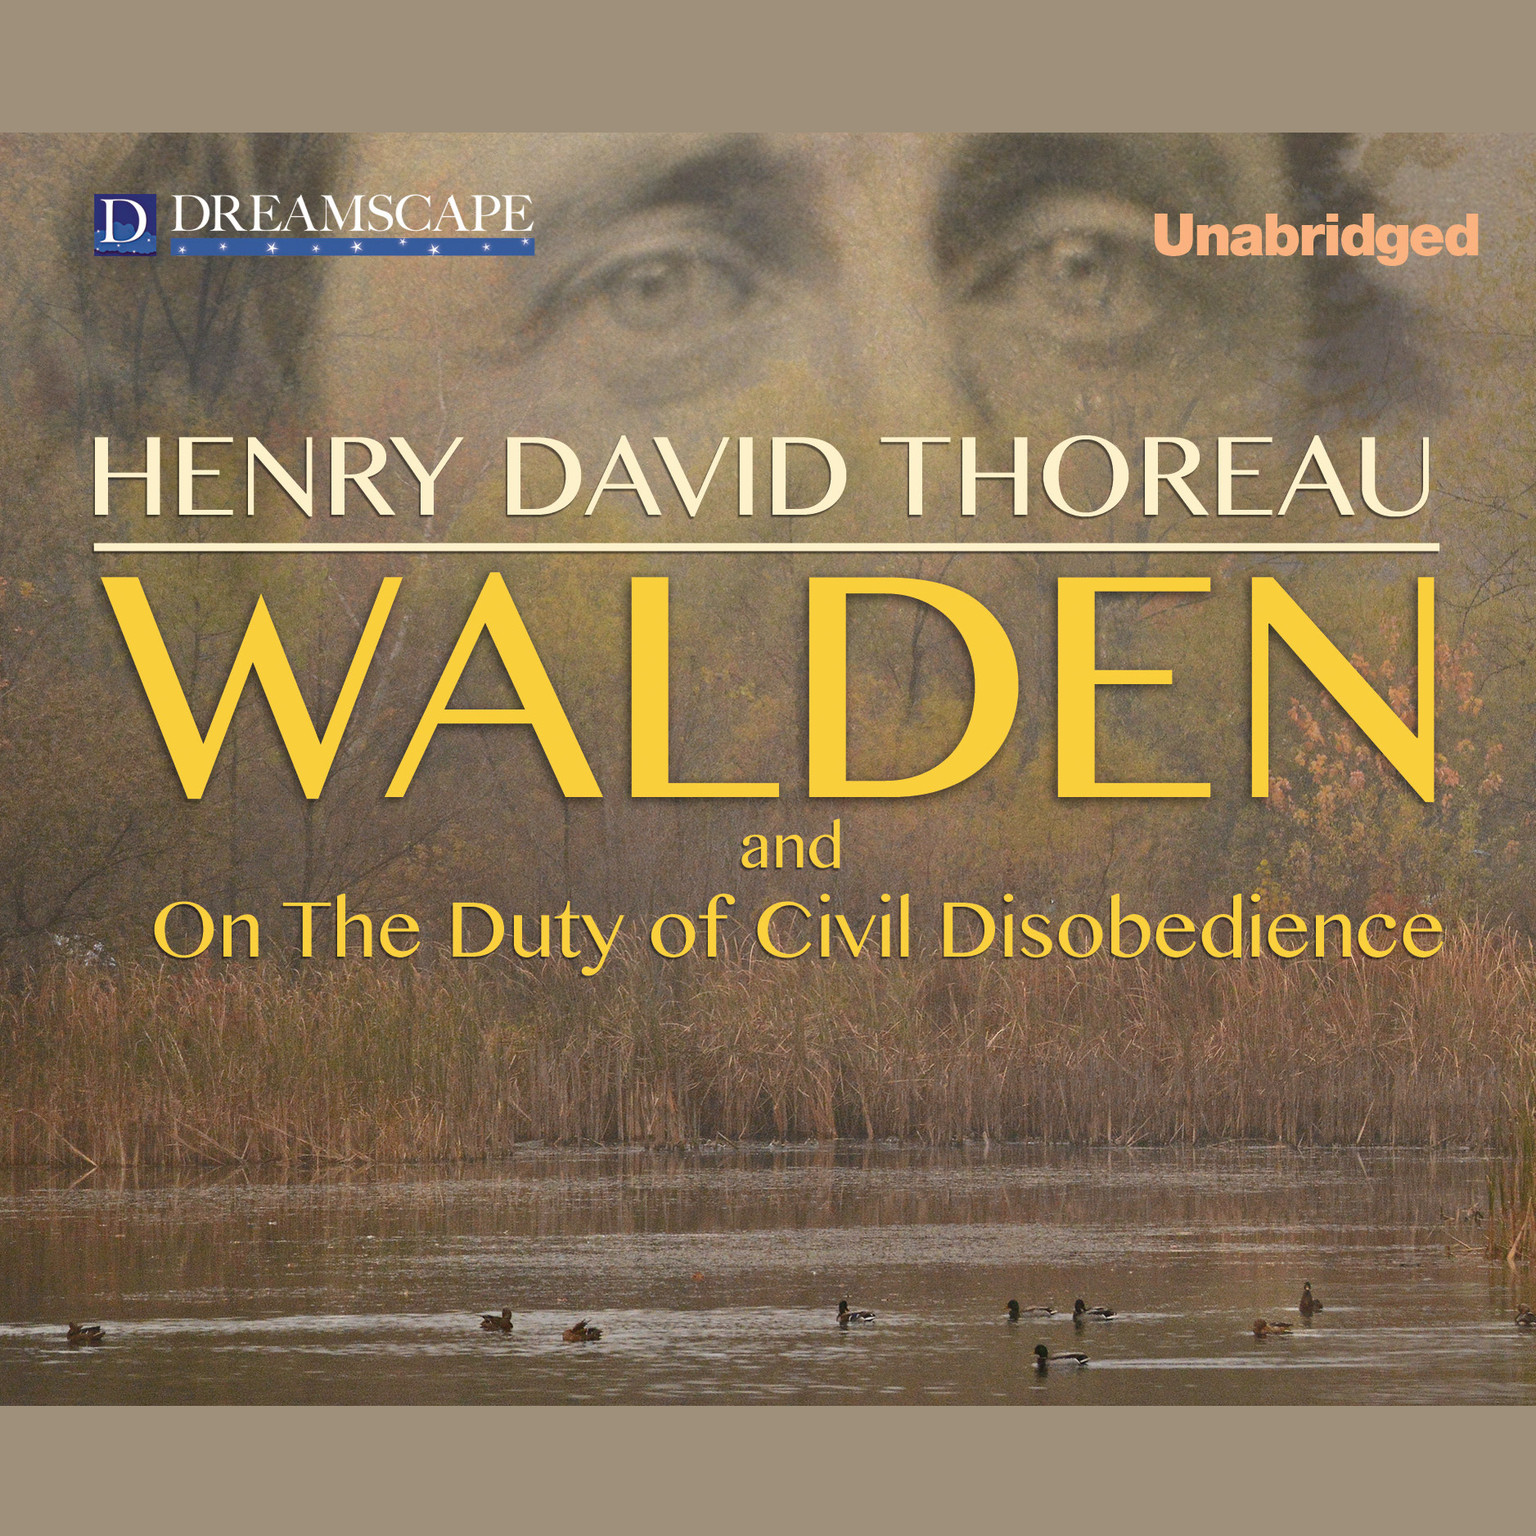 essay on walden